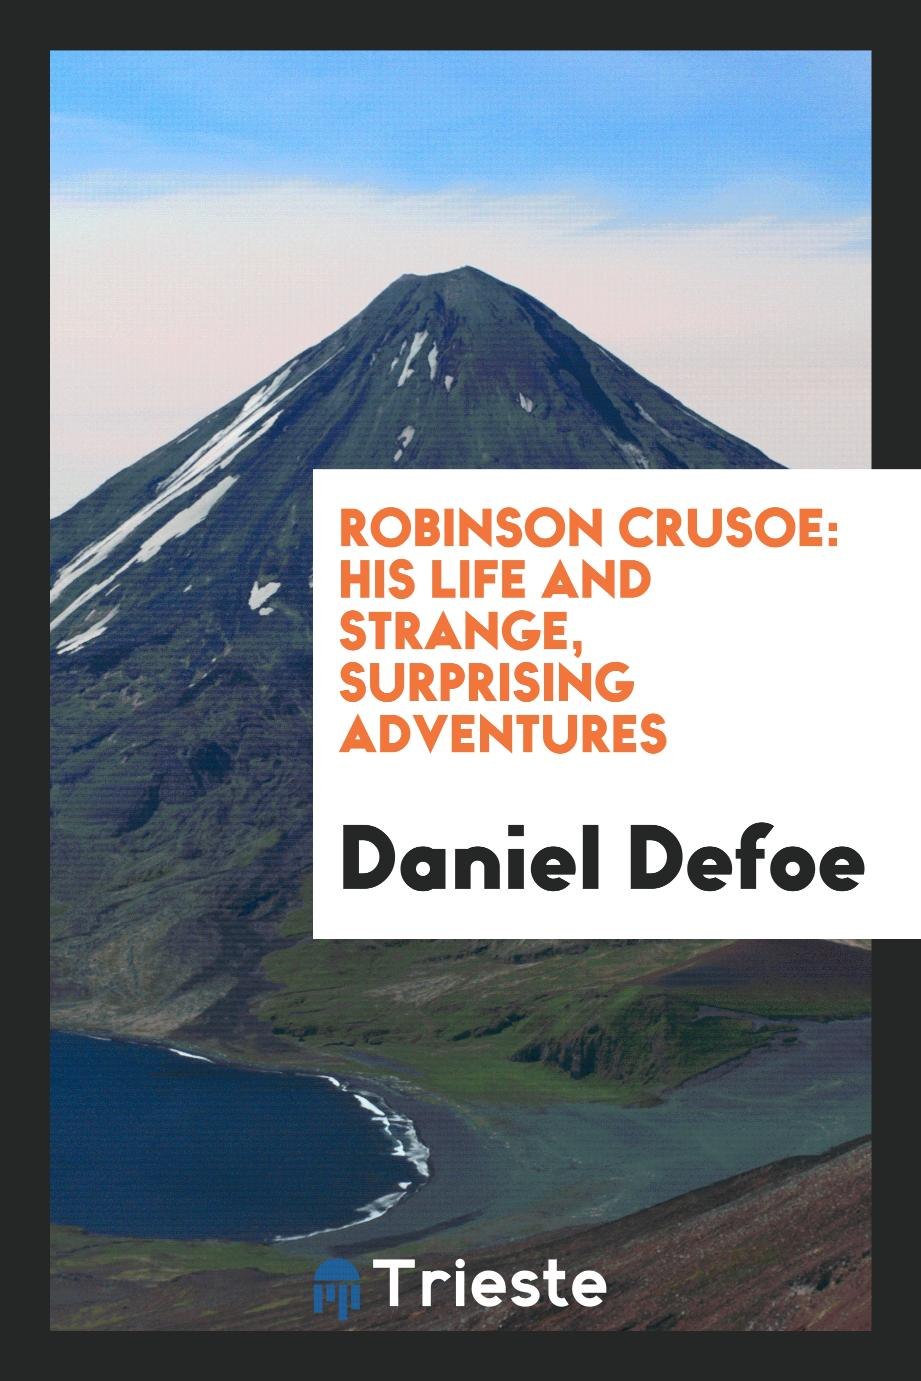 Robinson Crusoe: His Life and Strange, Surprising Adventures